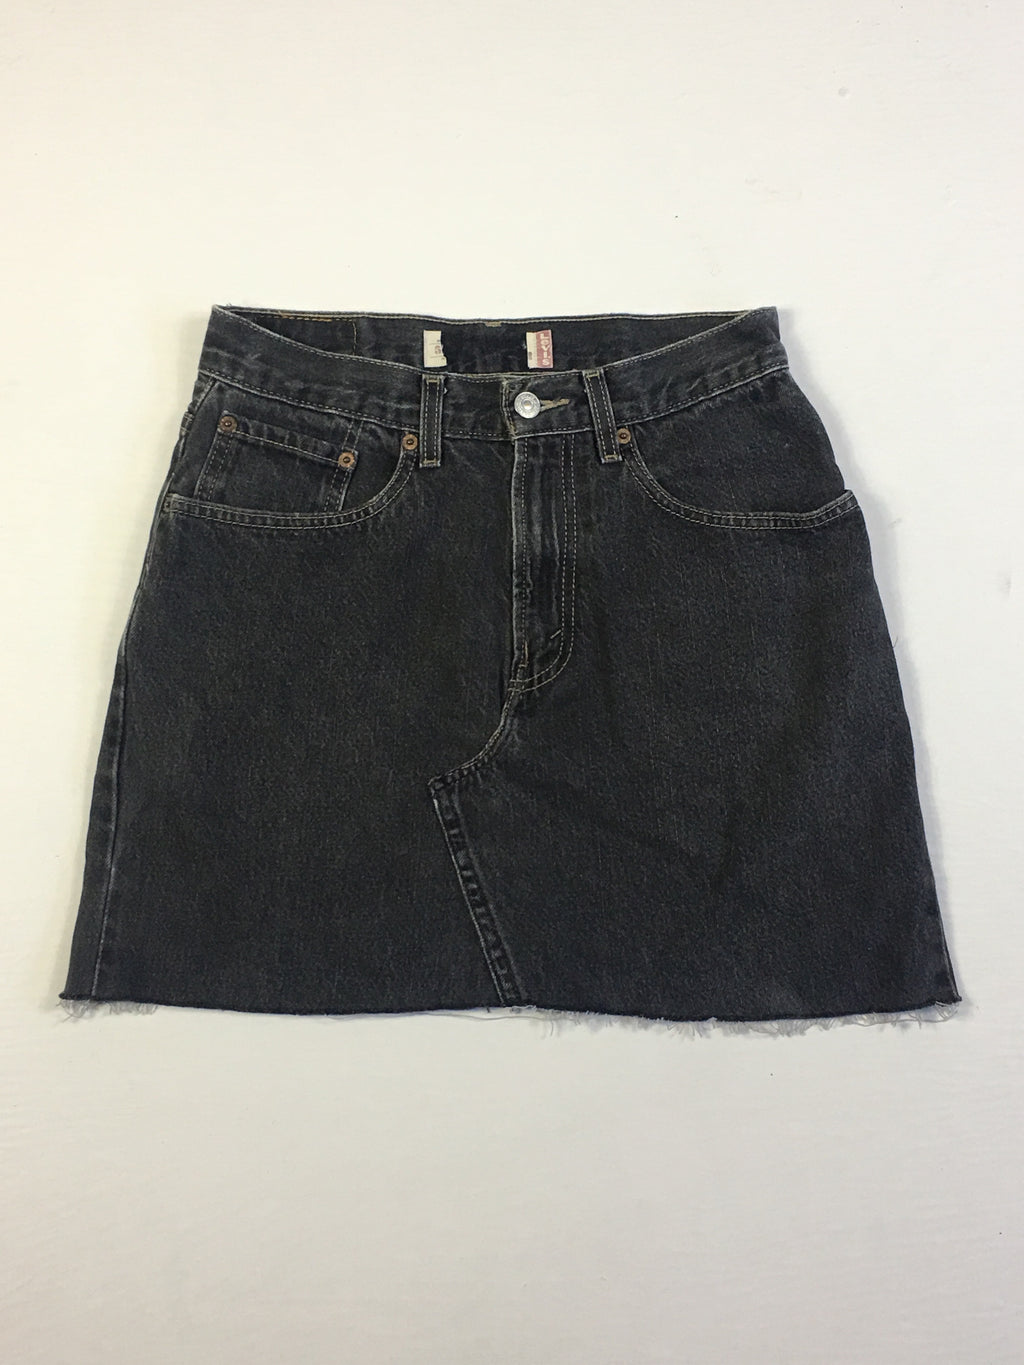 VINTAGE LEVI DENIM SKIRT - GUSSET STITCH - BLACK WASH DENIM